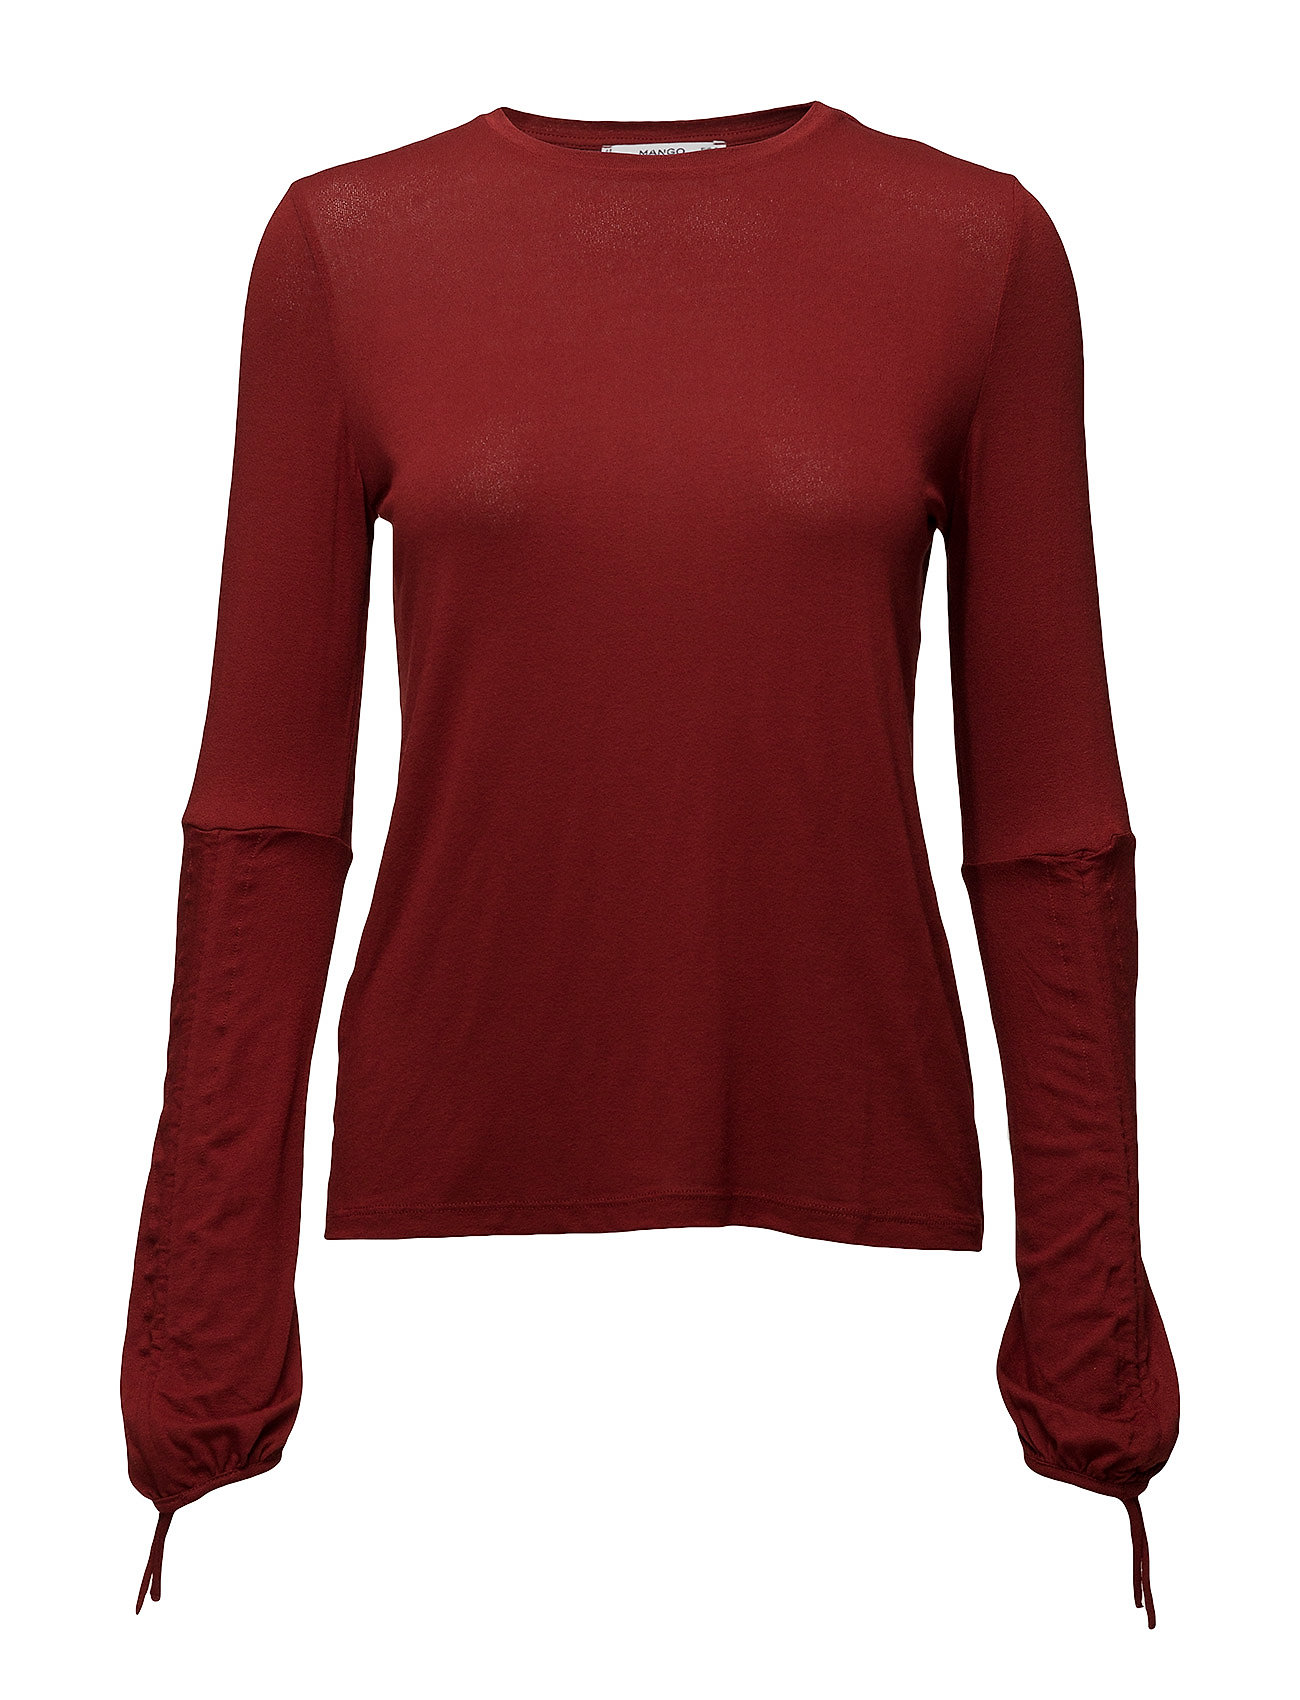 Image of Puffed Sleeves T-Shirt (2789555633)